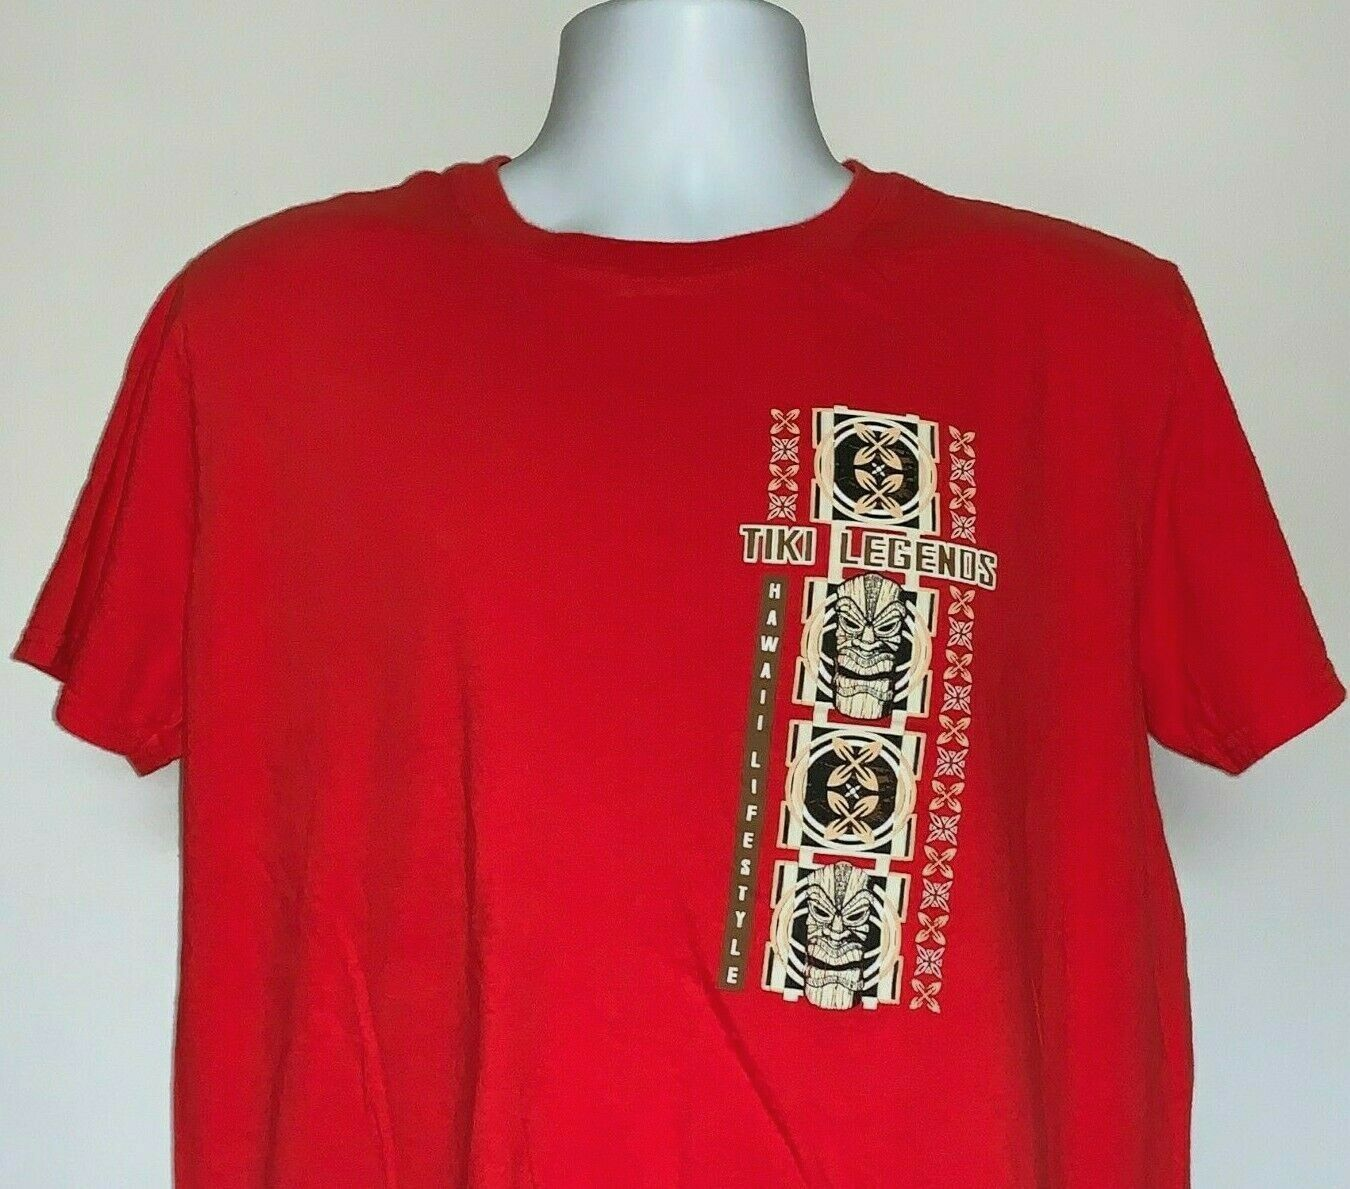 Primary image for Hawaii Lifestyle Tiki Legends T Shirt Mens Large Red 100% Cotton